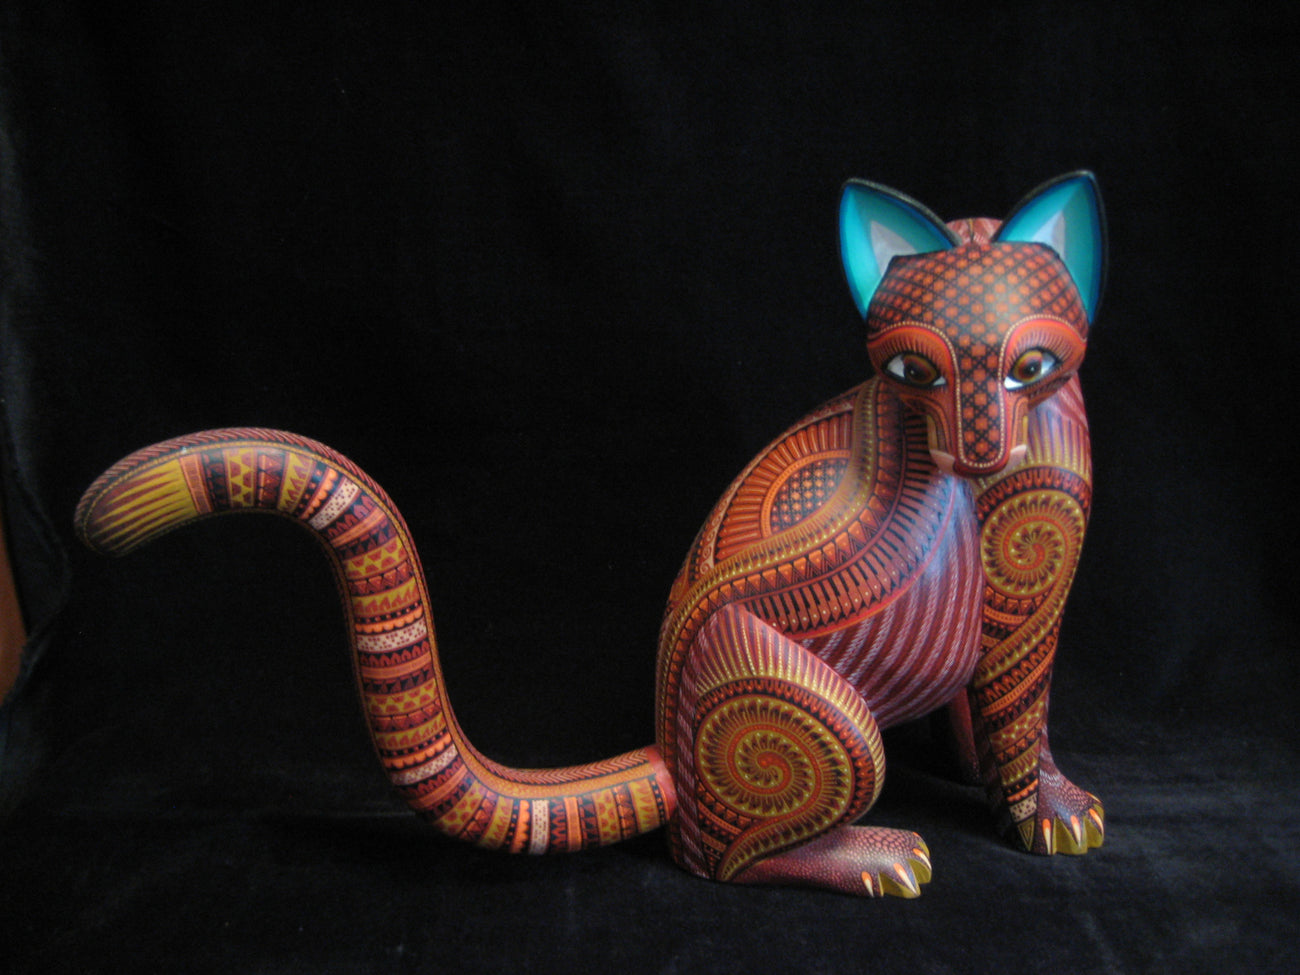 Beautiful Mexican Folk Art Oaxacan Wood Carving Cat by Julia Fuentes